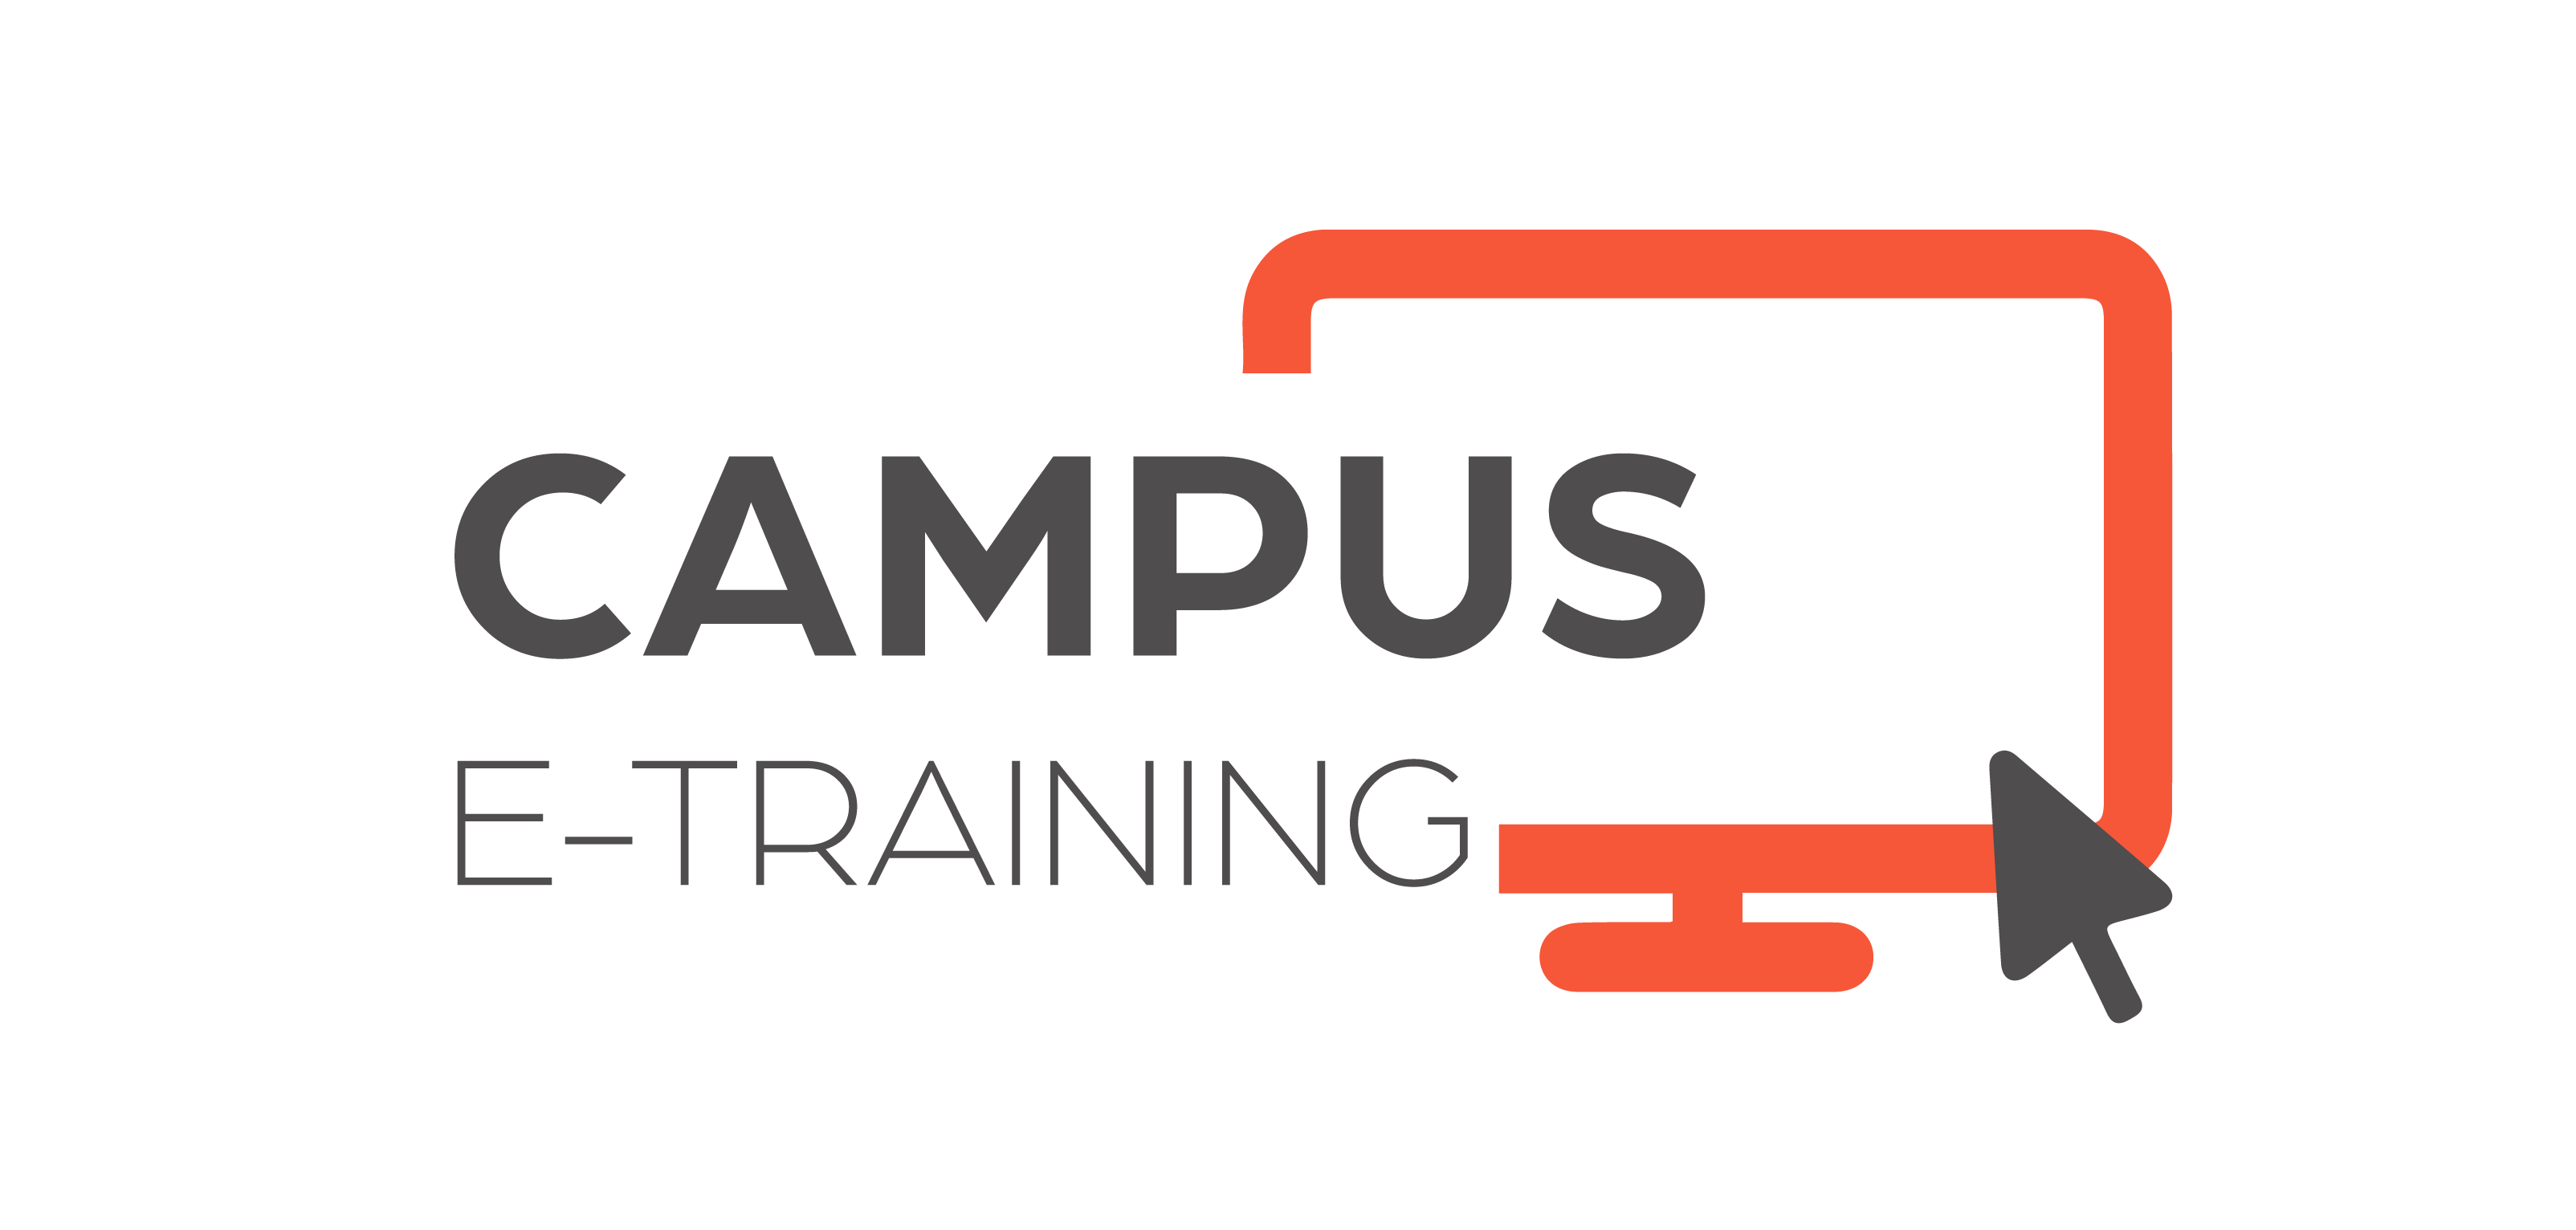 Campus E-training